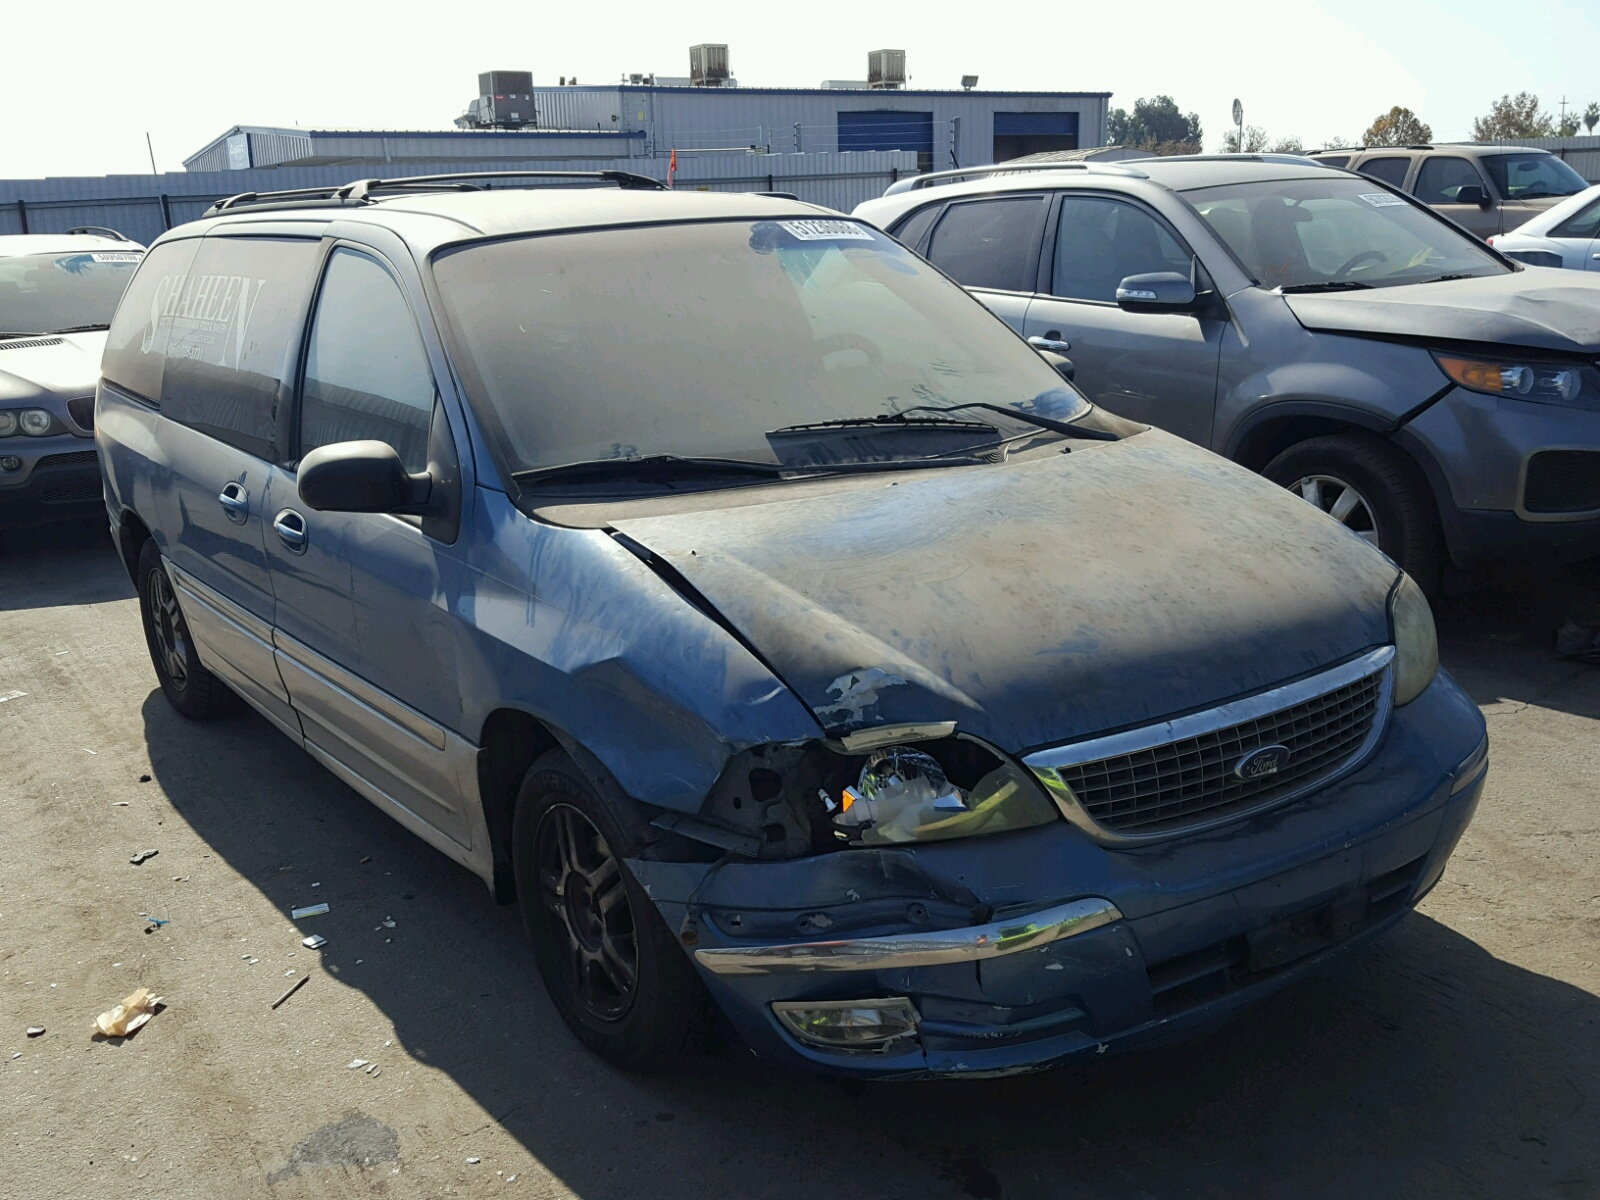 hight resolution of 2fmda53433bb56249 2003 ford windstar s 3 8l left view 2fmda53433bb56249